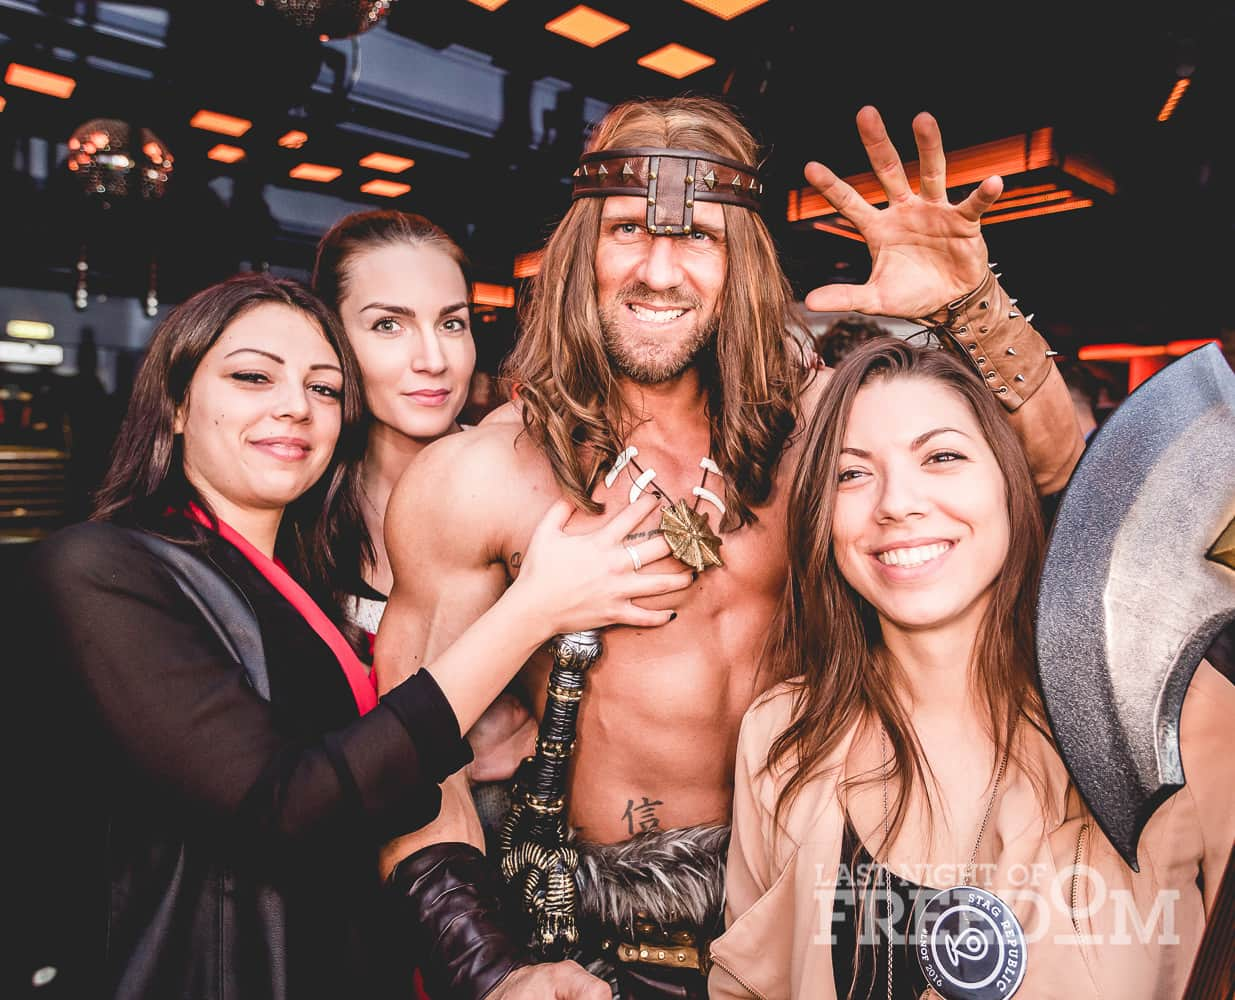 A man dressed as Conan the Barbarian and posing with three women